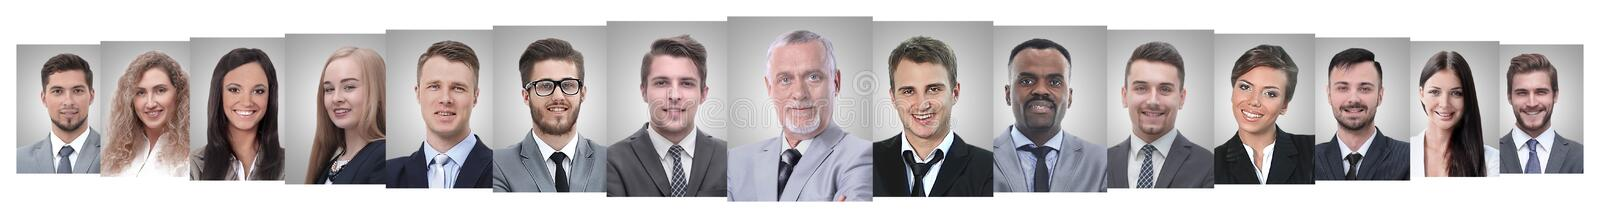 Panoramic collage of portraits of successful employees royalty free stock photography